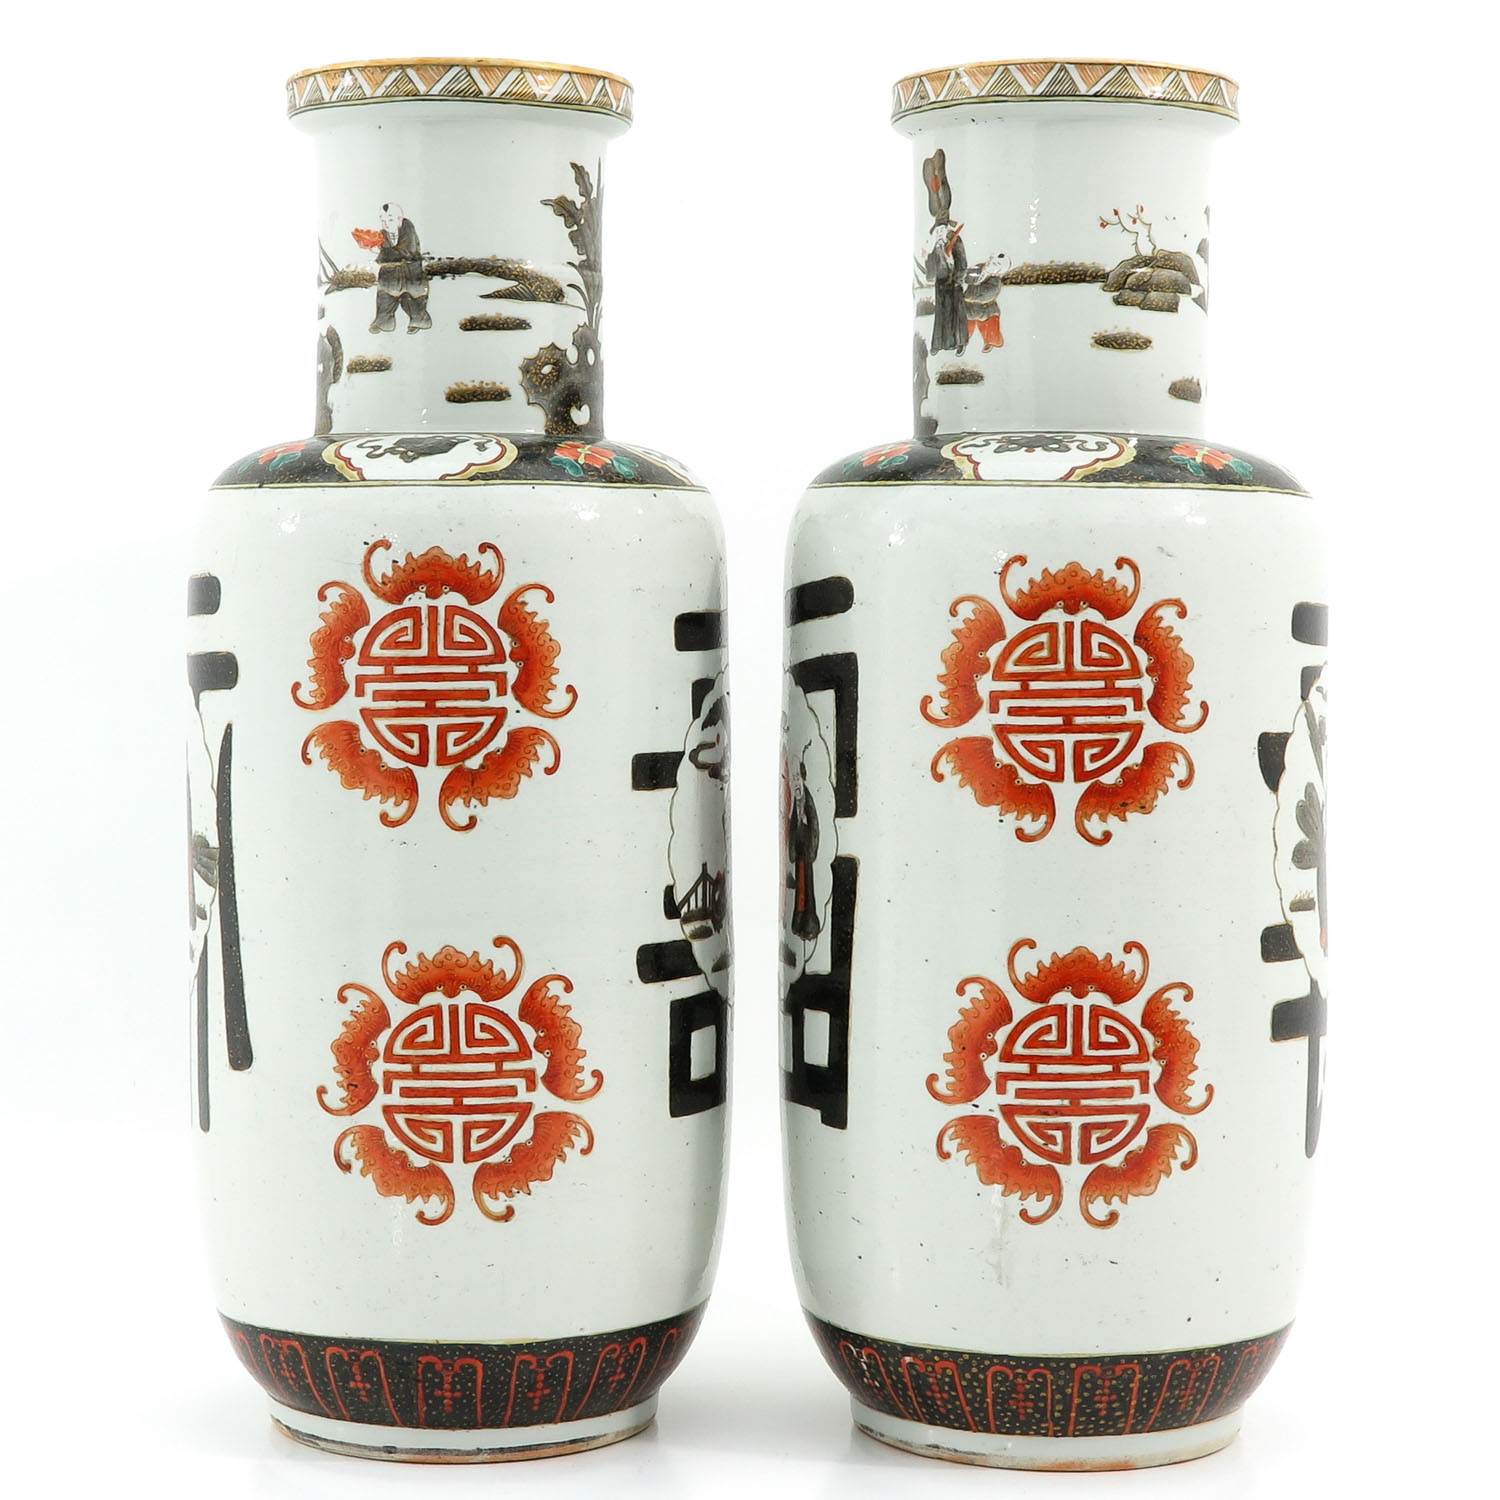 A Pair of Polychrome Decor Vases - Image 2 of 10